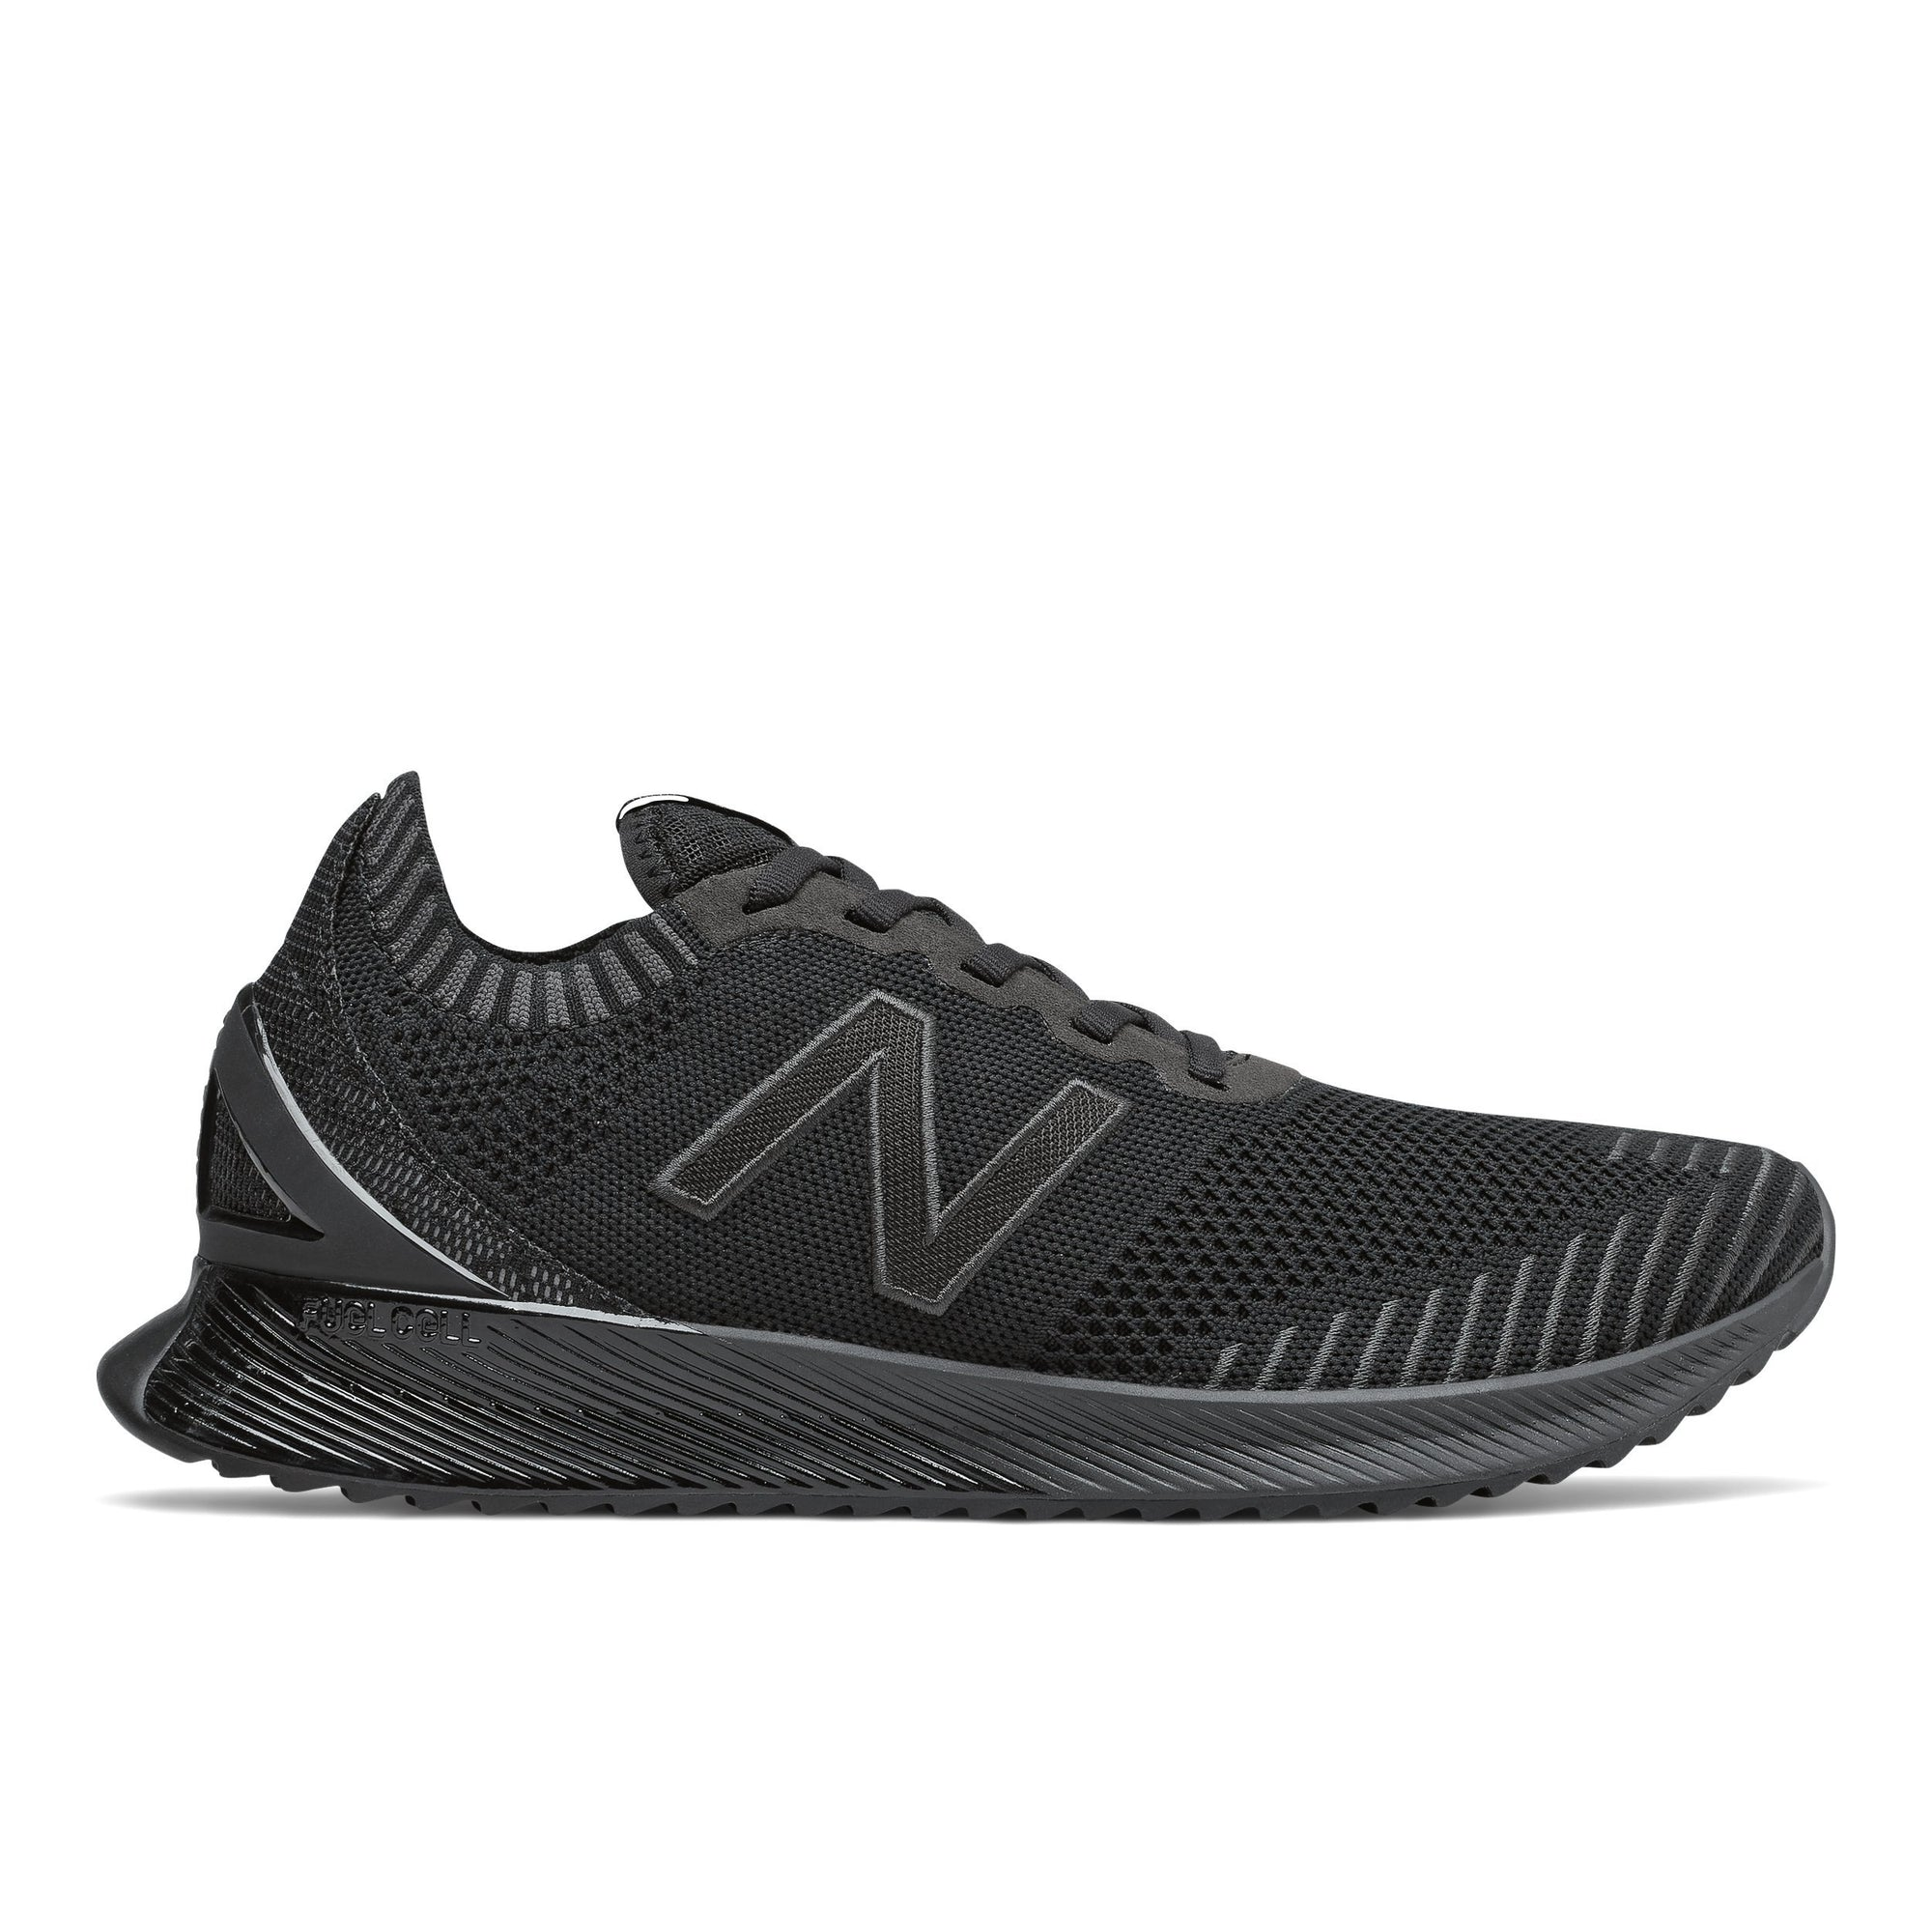 New Balance Womens FuelCell Echo - Triple Black SP-Footwear-Womens New Balance